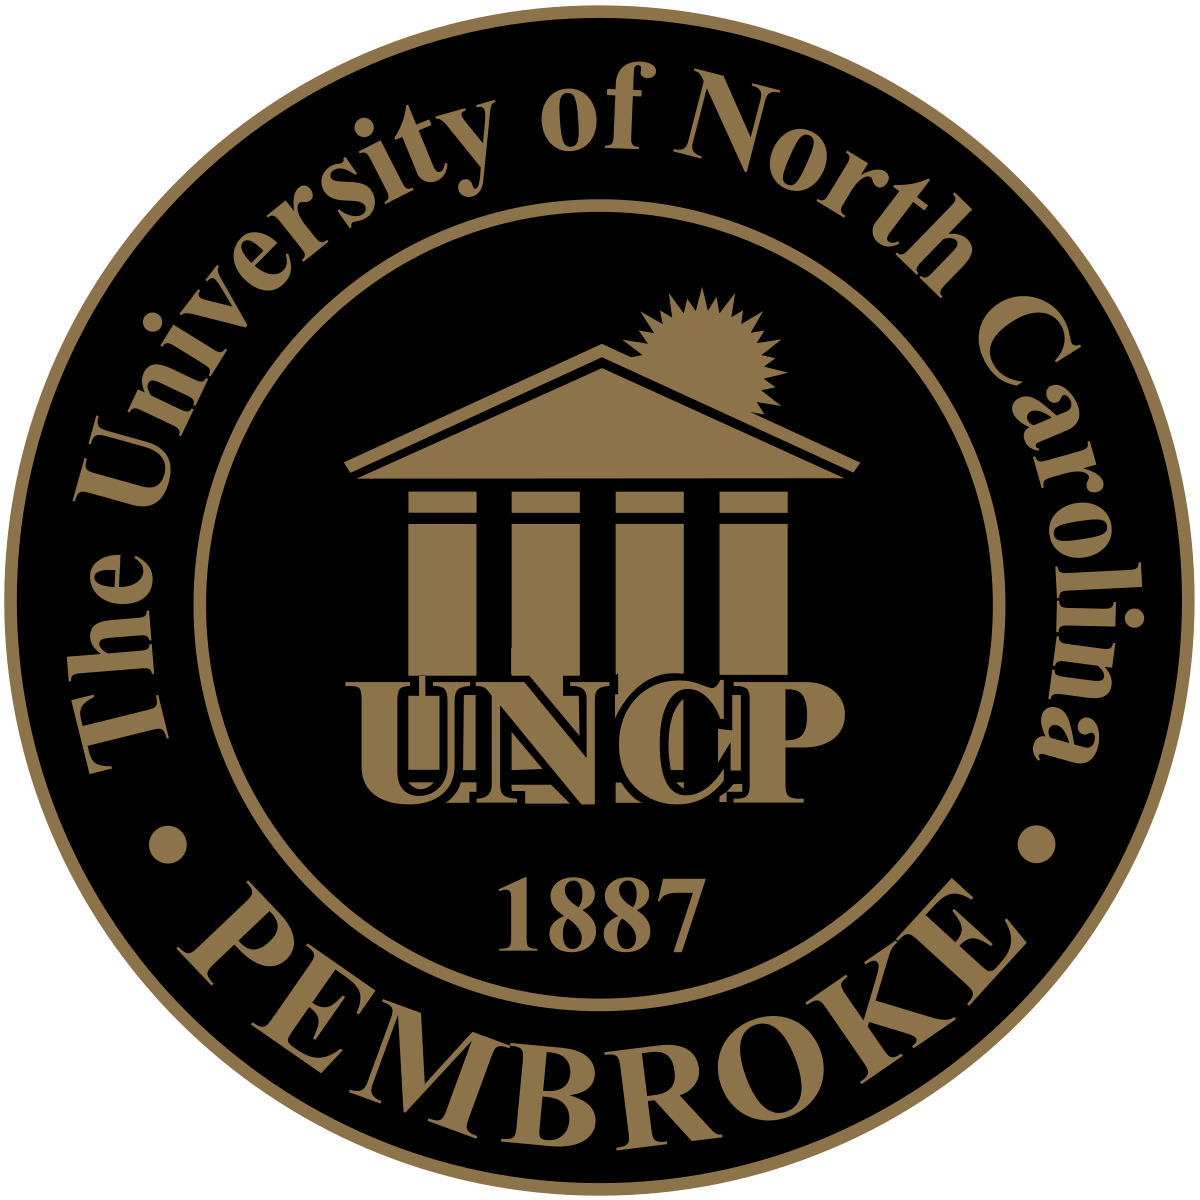 University of North Carolina at Pembroke.